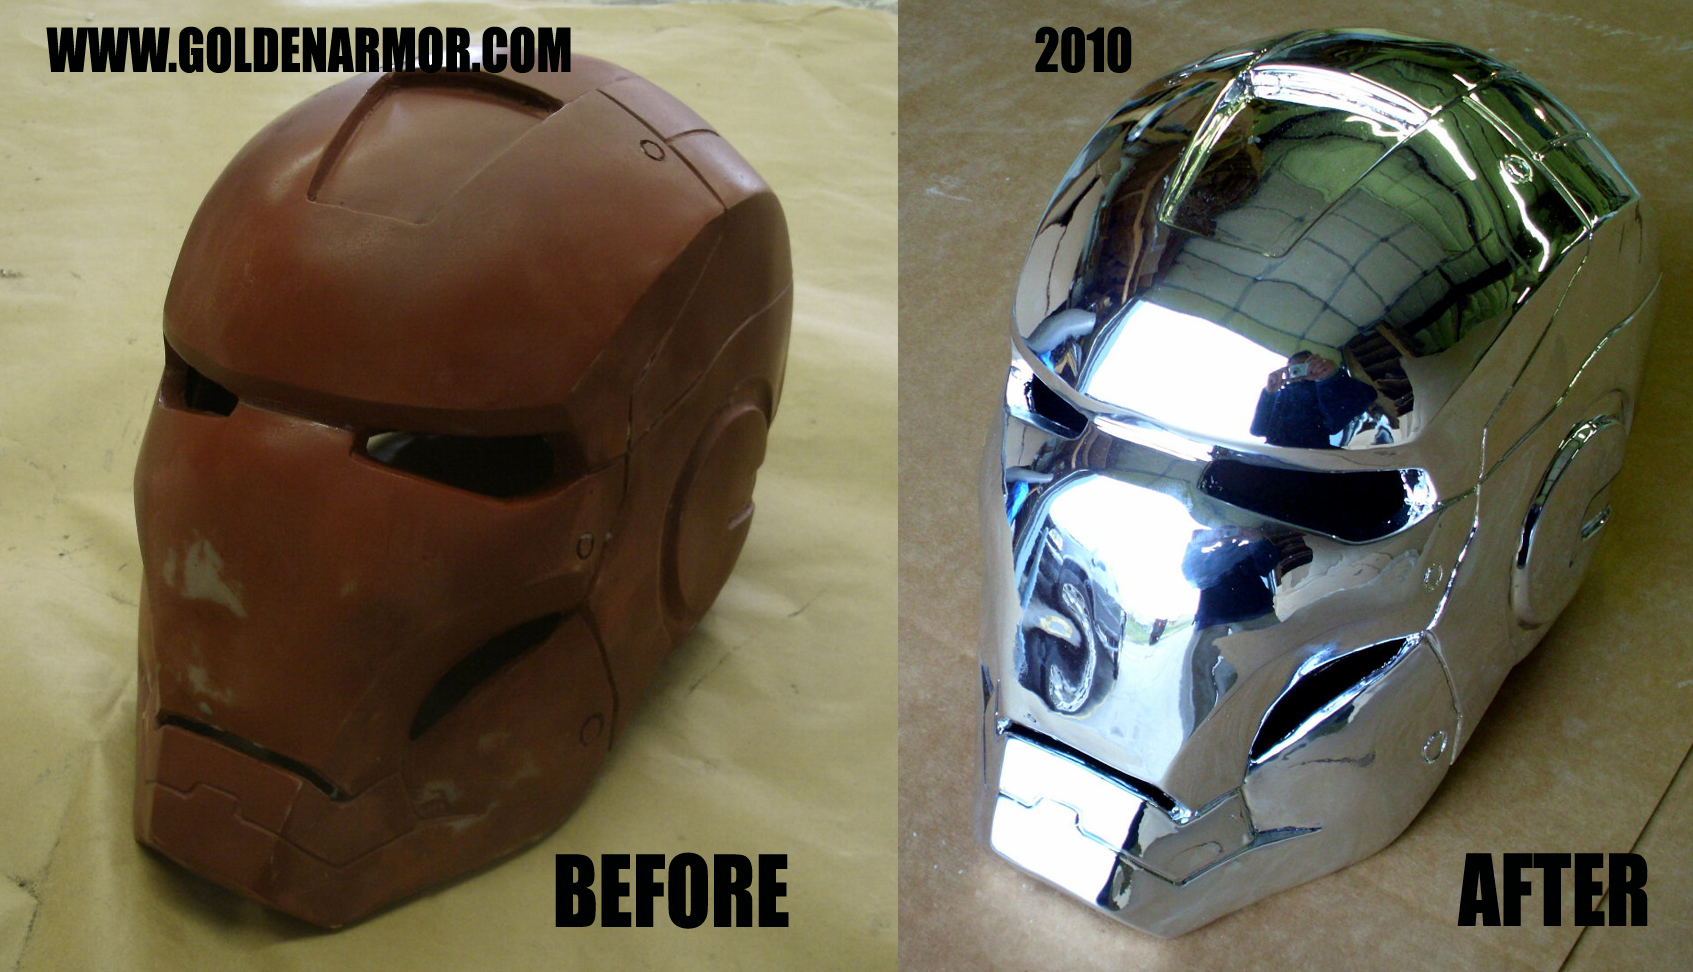 CHROME PLATING SERVICES - Prop Replicas, Custom Fabrication